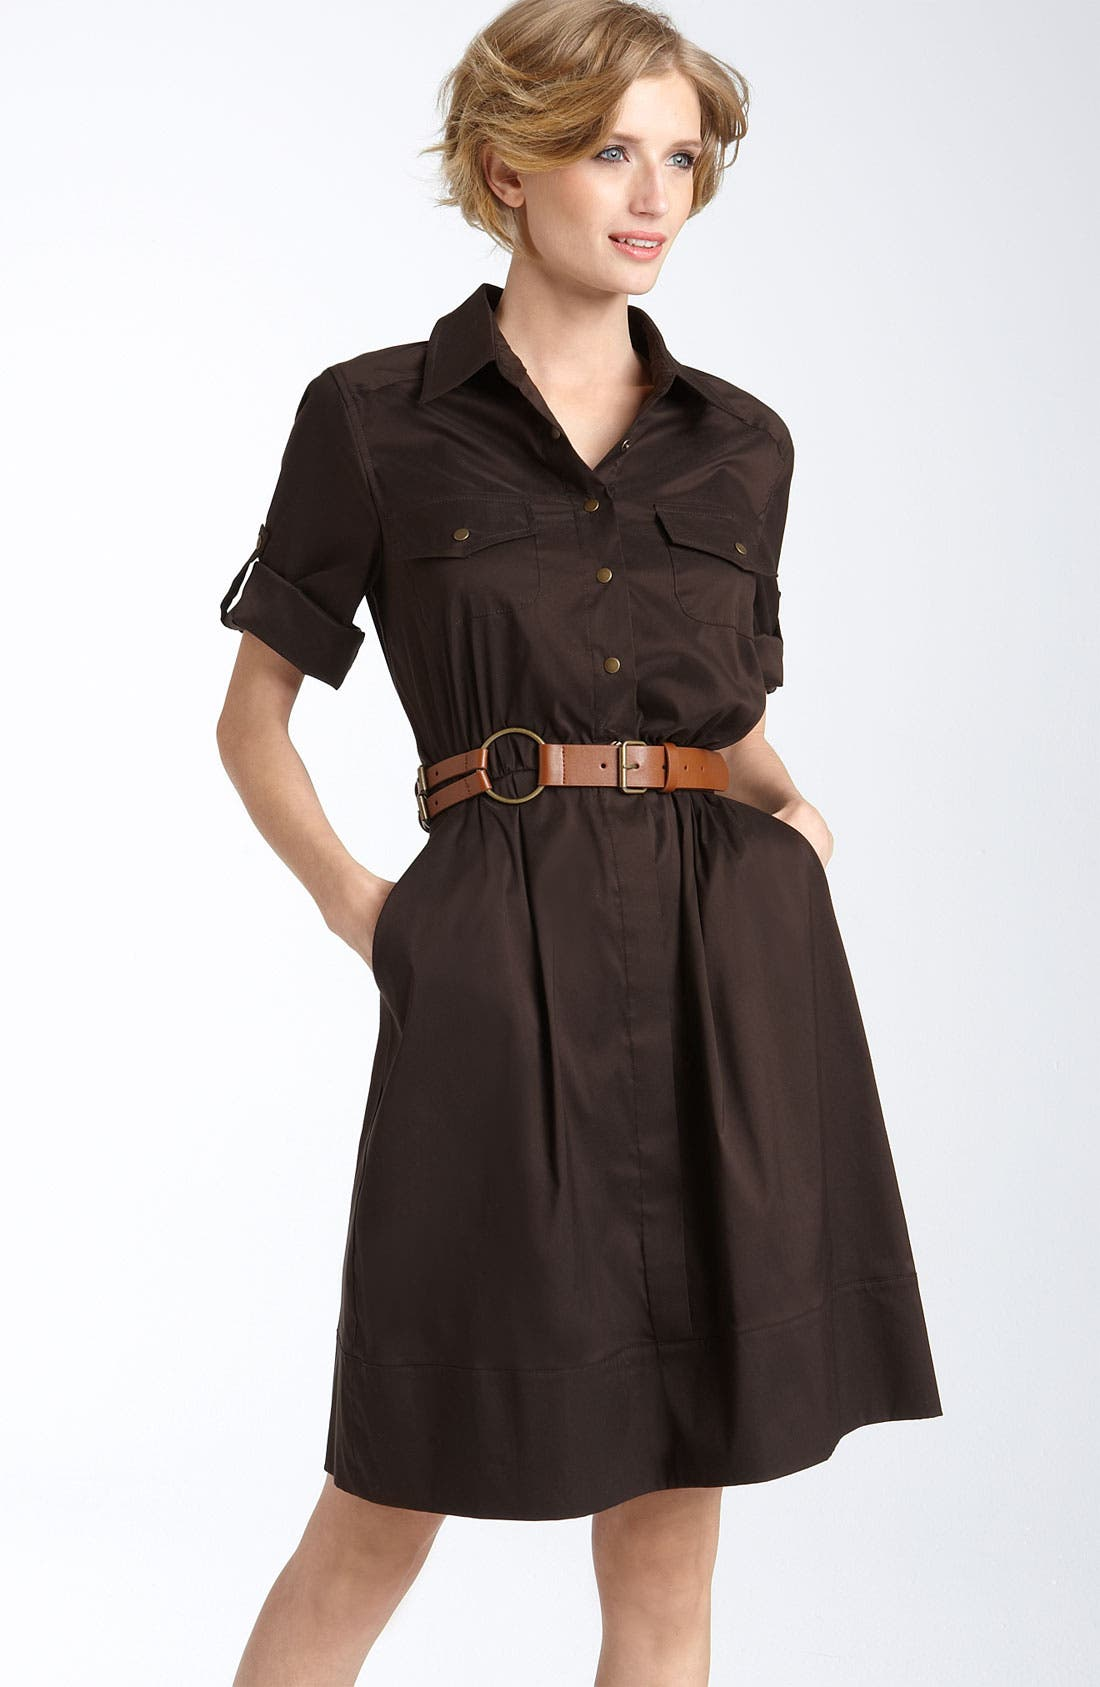 Alternate Image 1 Selected - Suzi Chin for Maggy Boutique Belted Cotton Blend Shirtdress